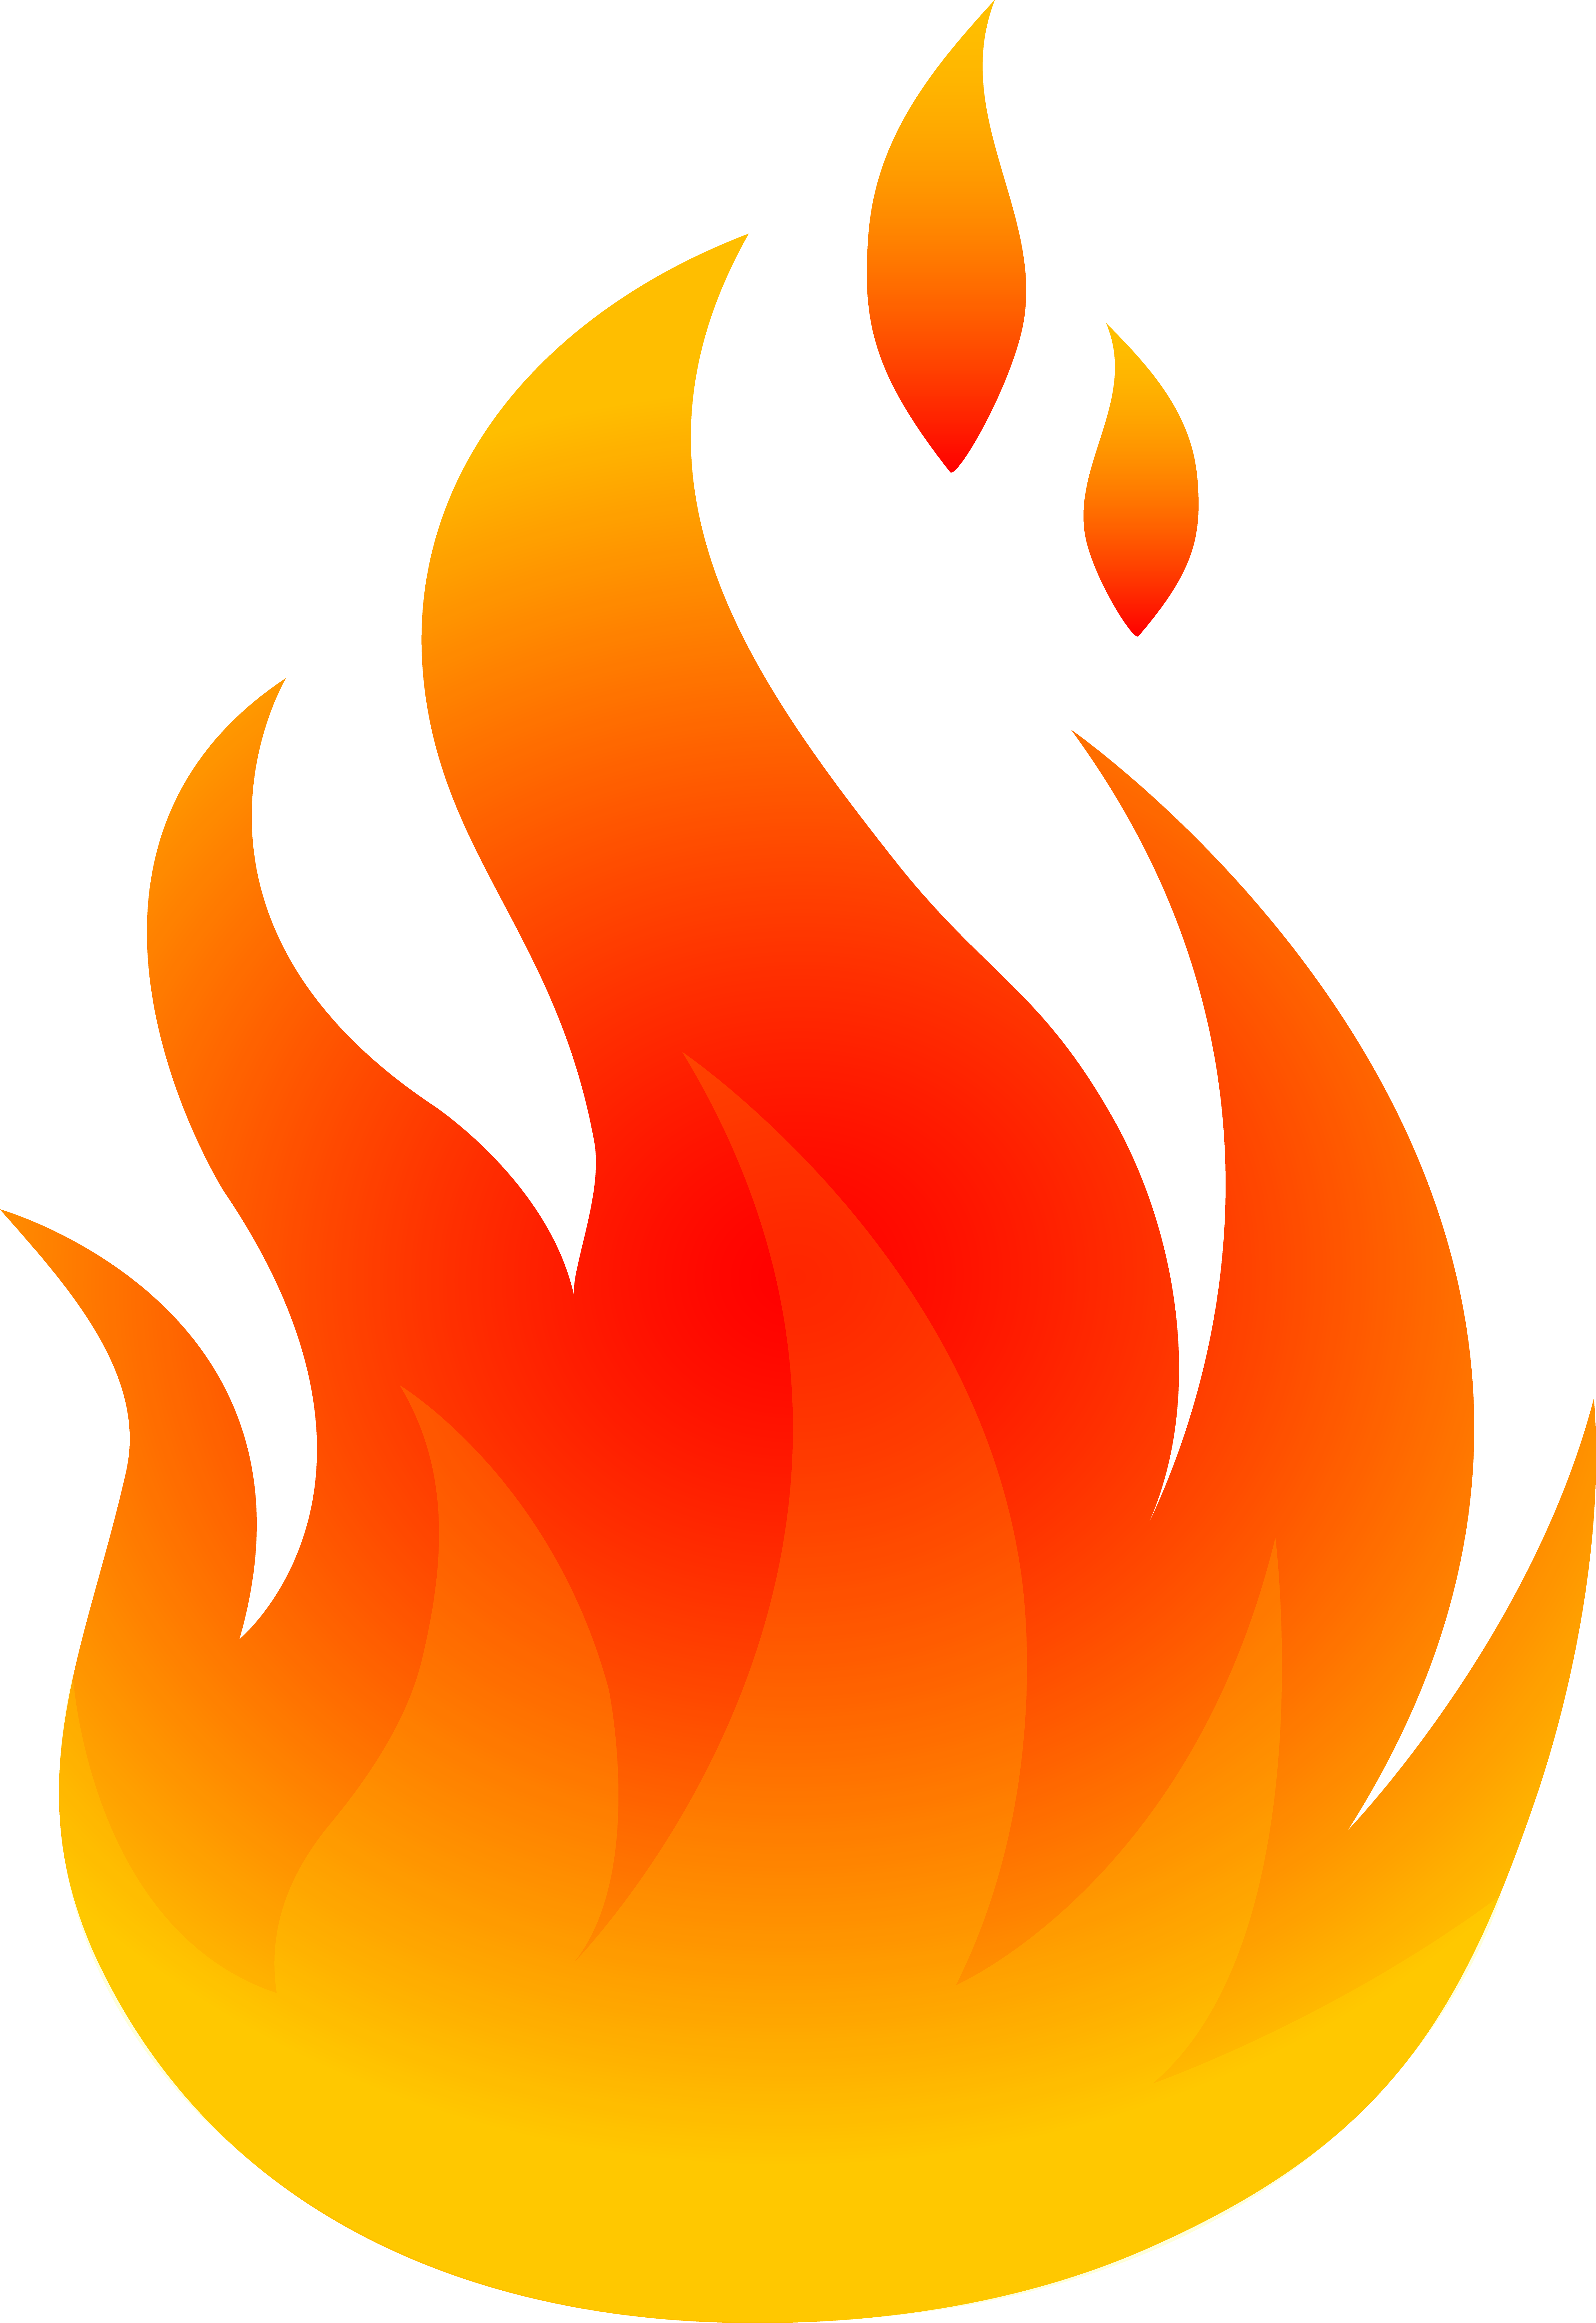 flame clipart fire